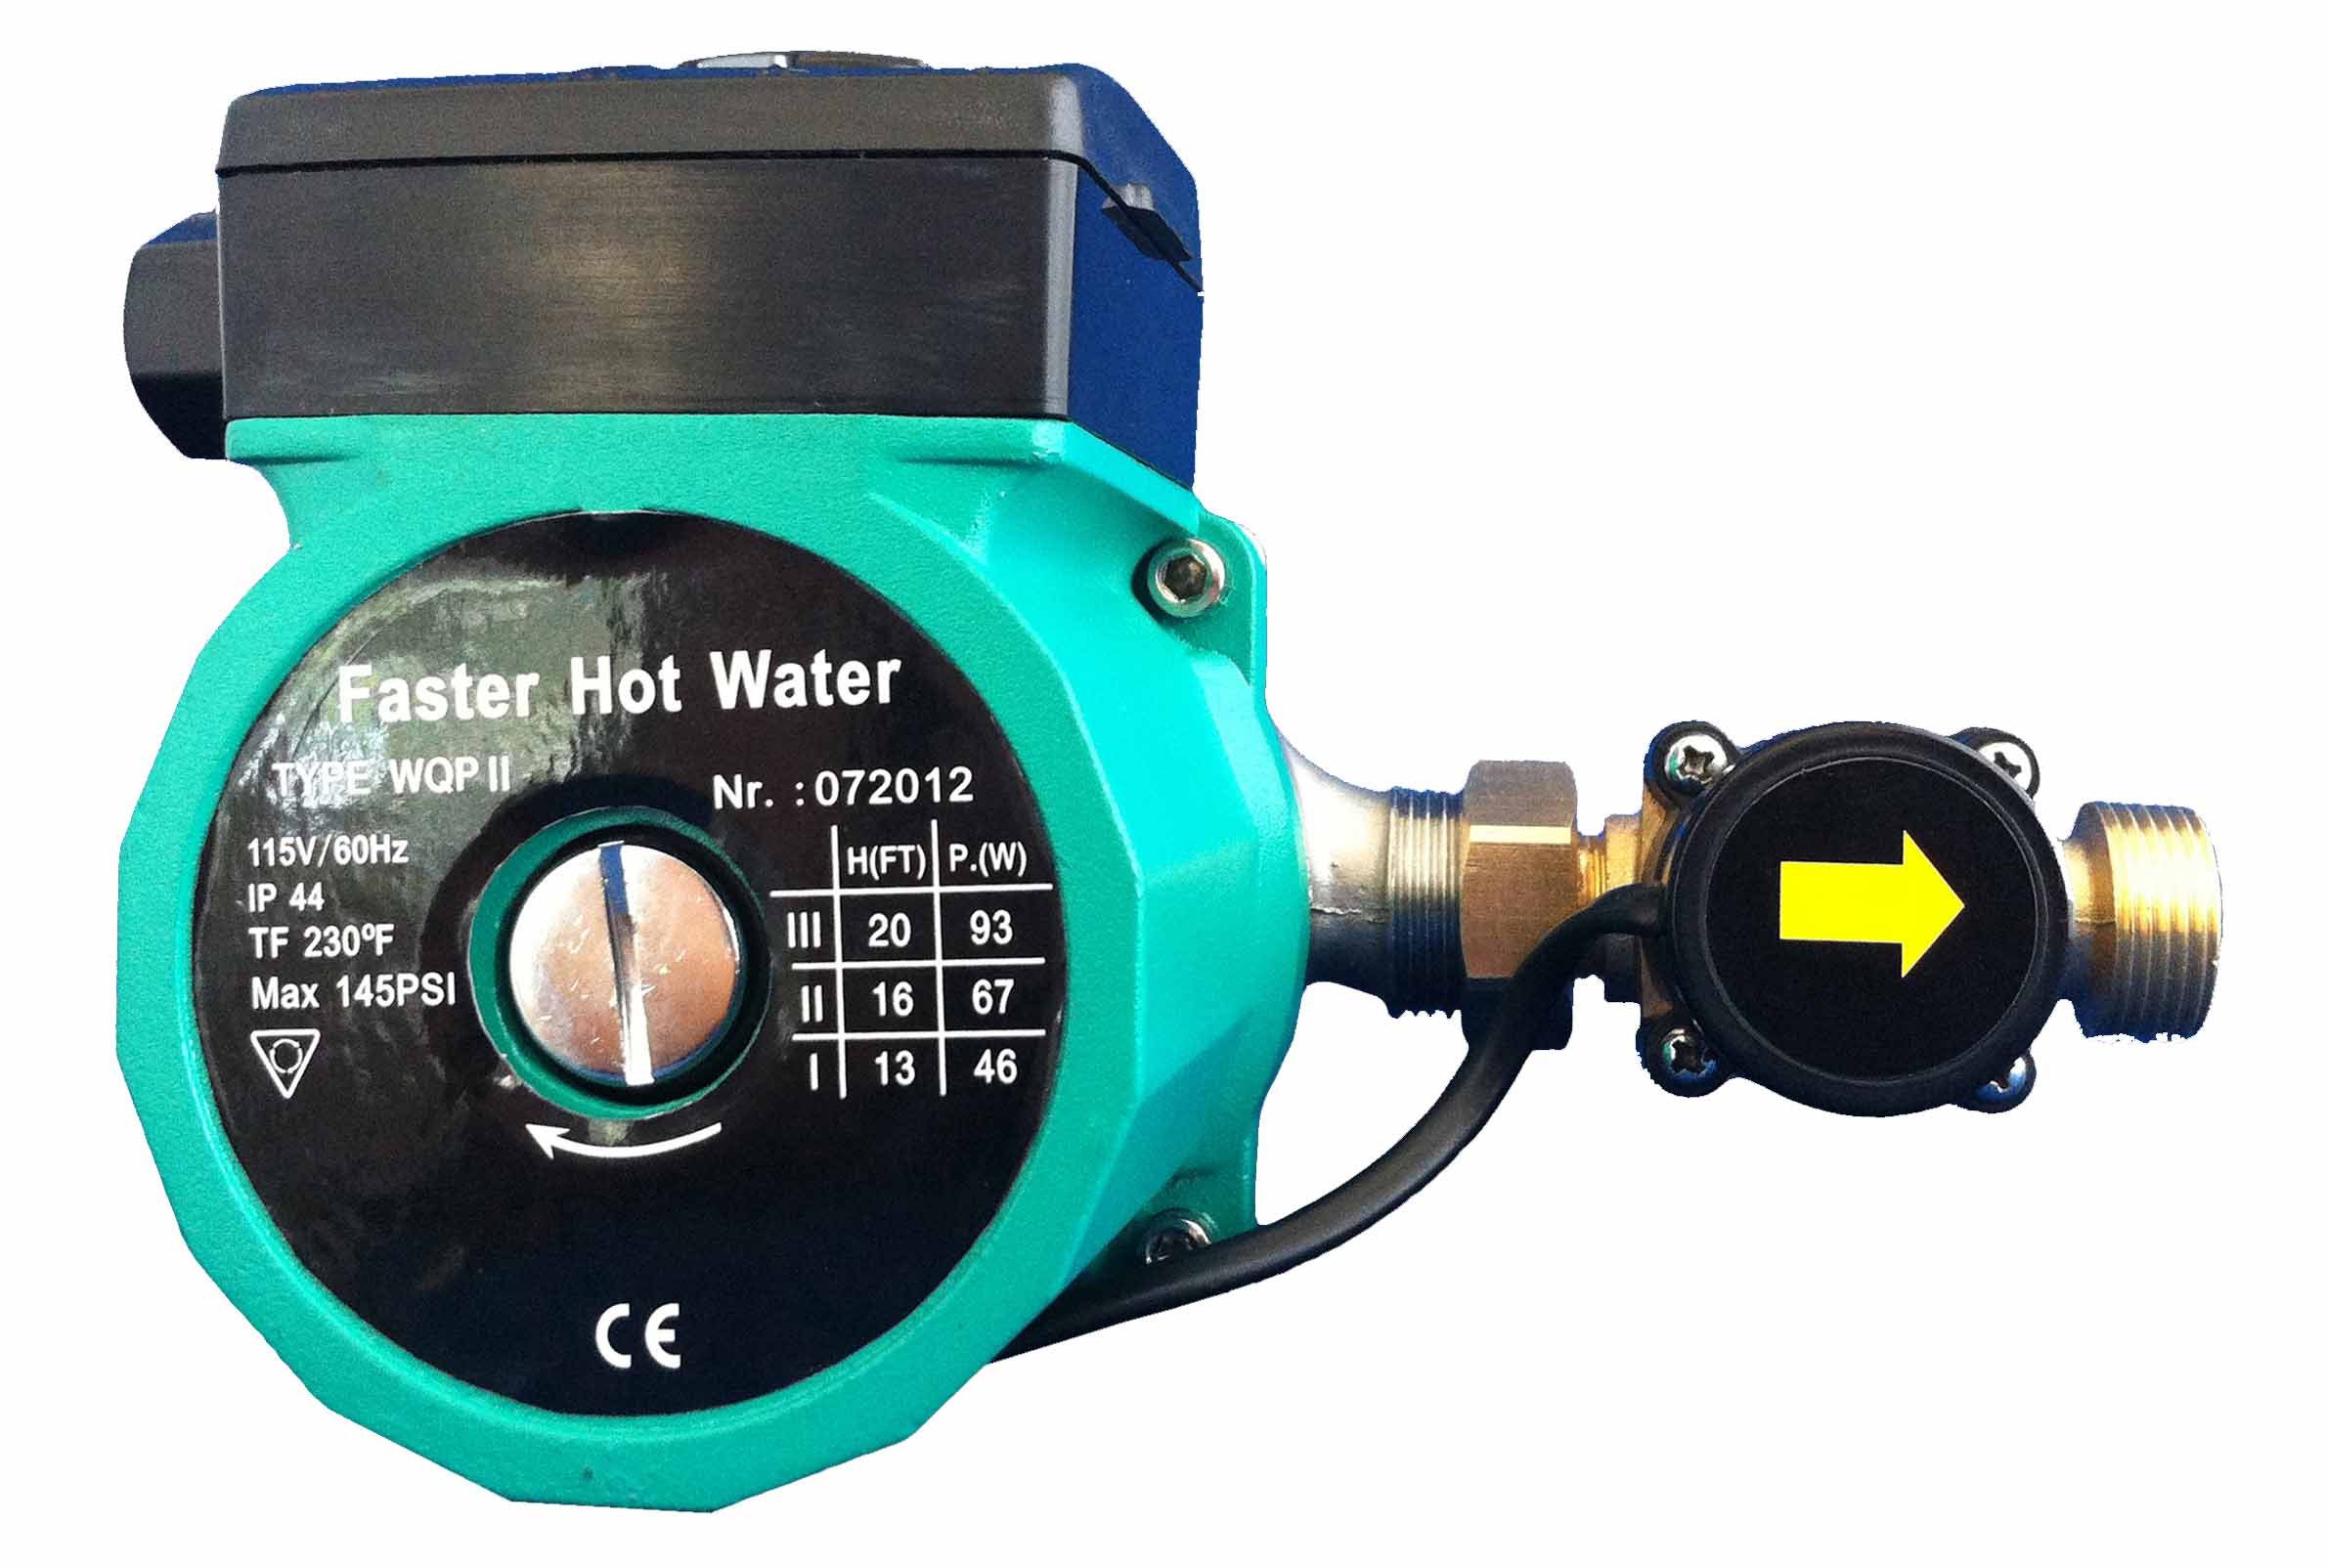 Wqp hot water recirculating pump installation instructions for Pros and cons of hot water recirculating pump